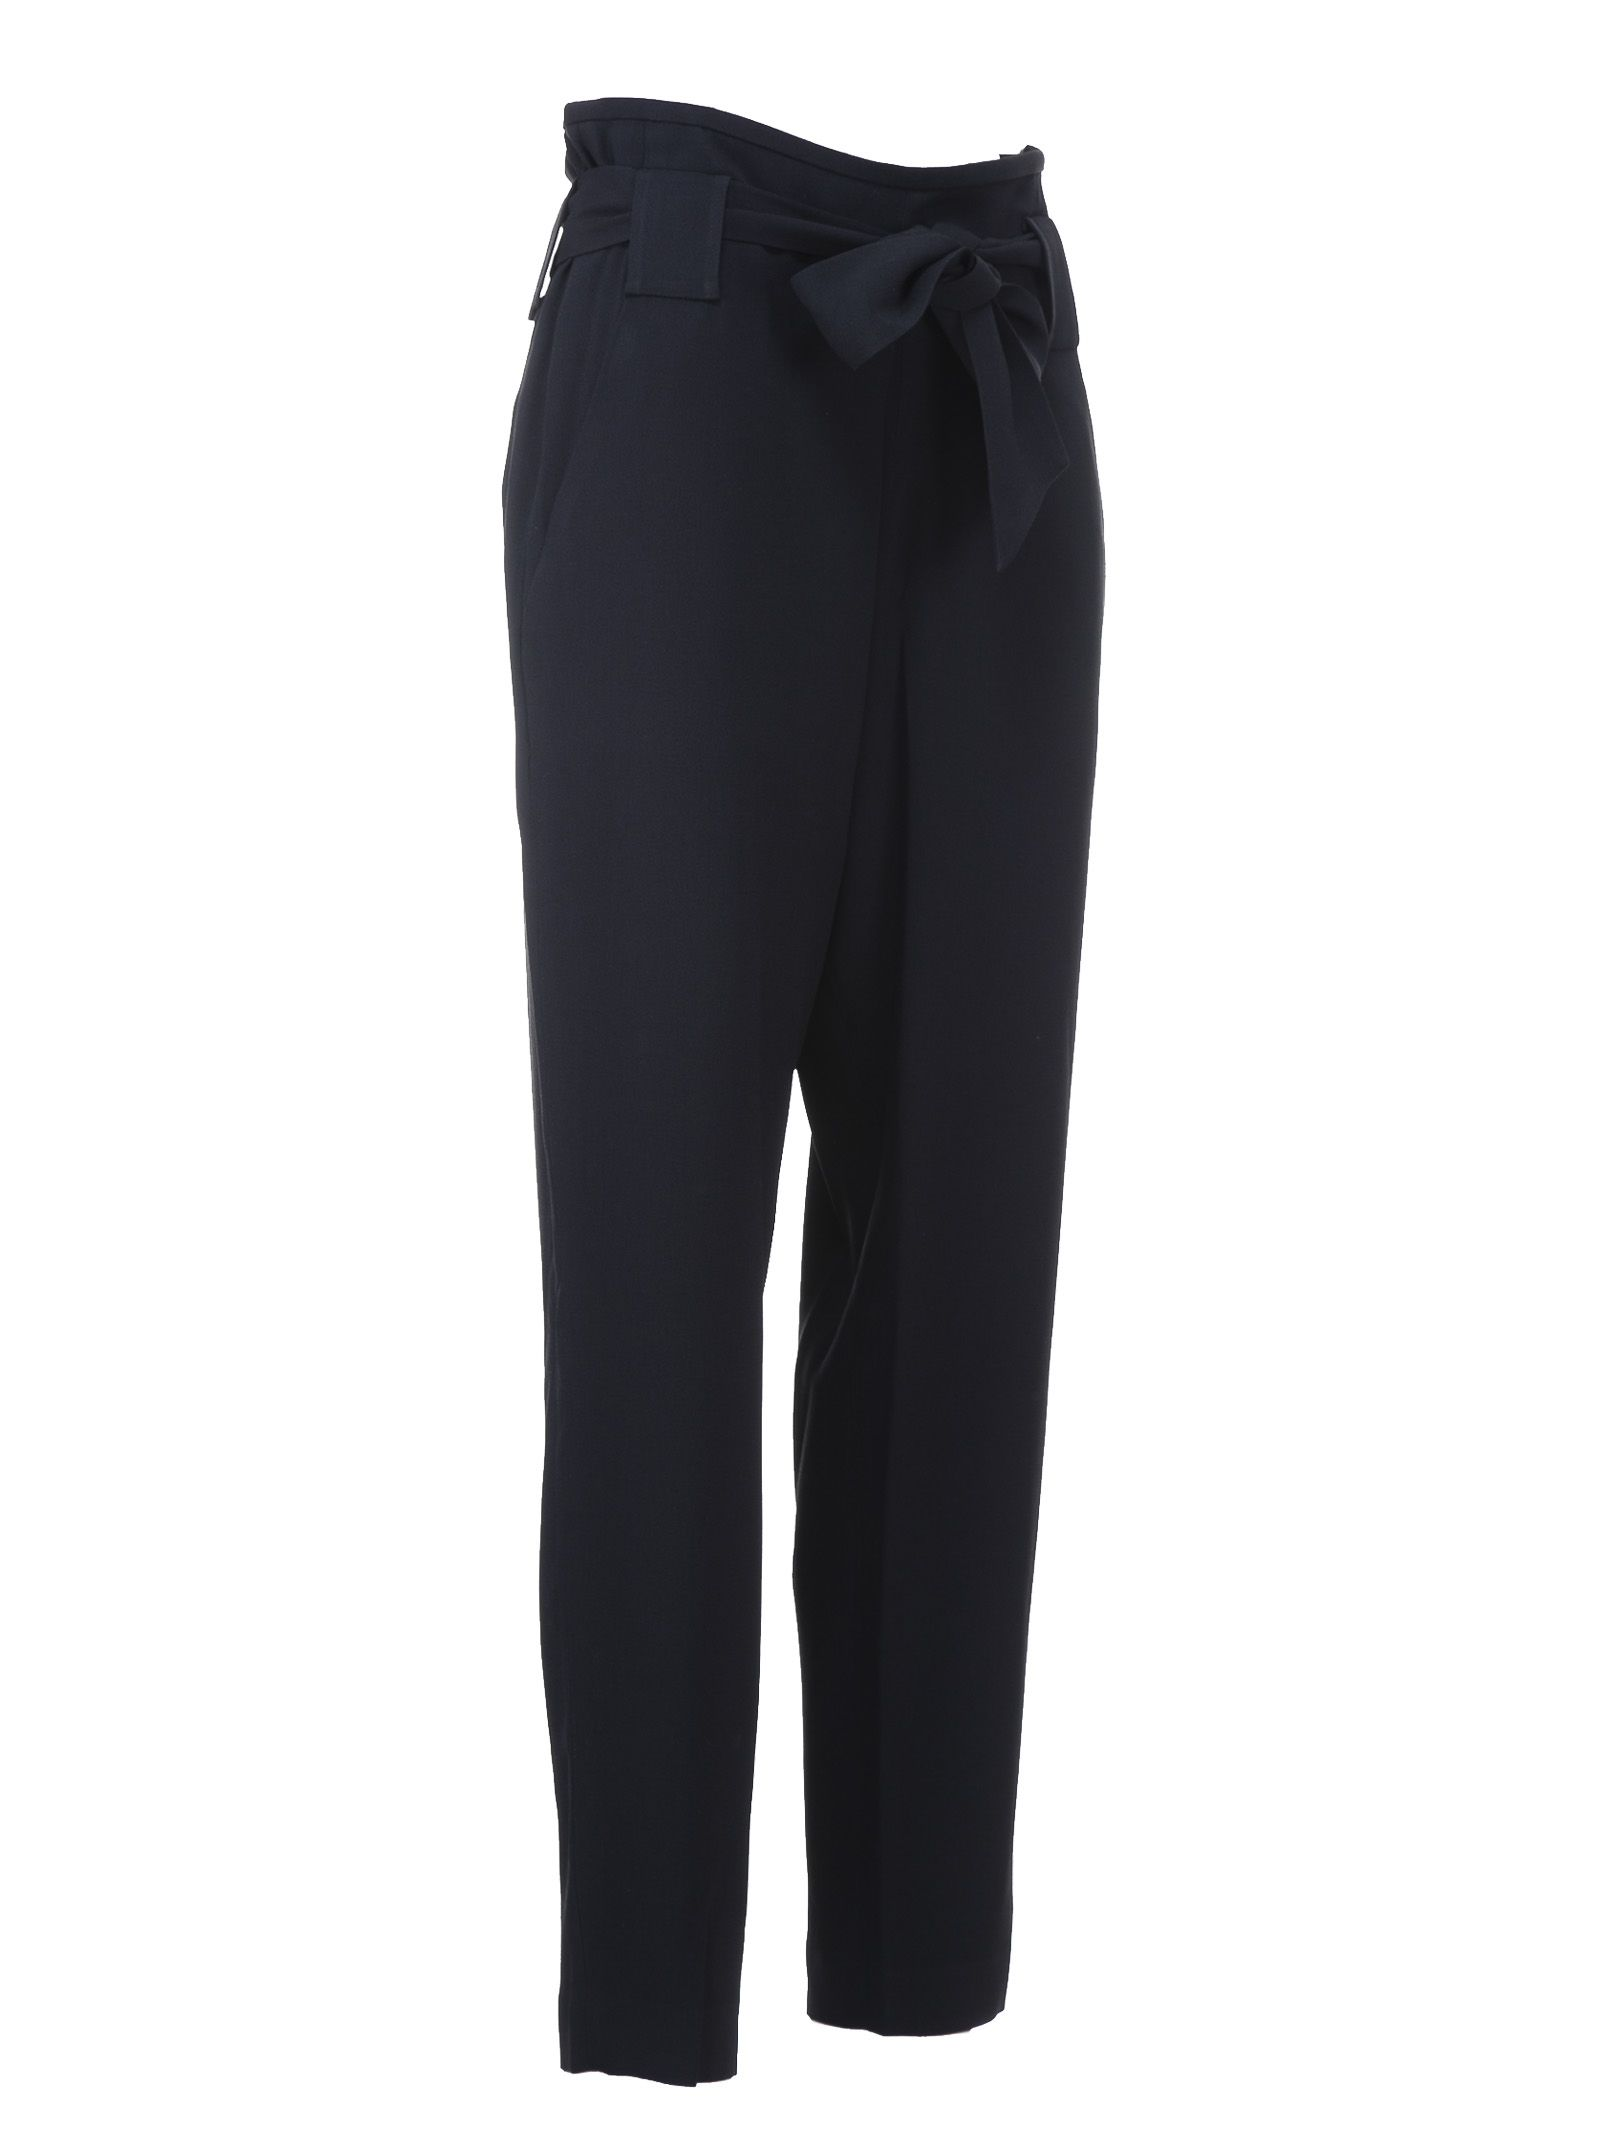 Outlet Looking For Clearance High Quality Jeterson trousers - Black Iro Sale Best Quality Free Shipping Low Price Visit New For Sale xhv4Ji